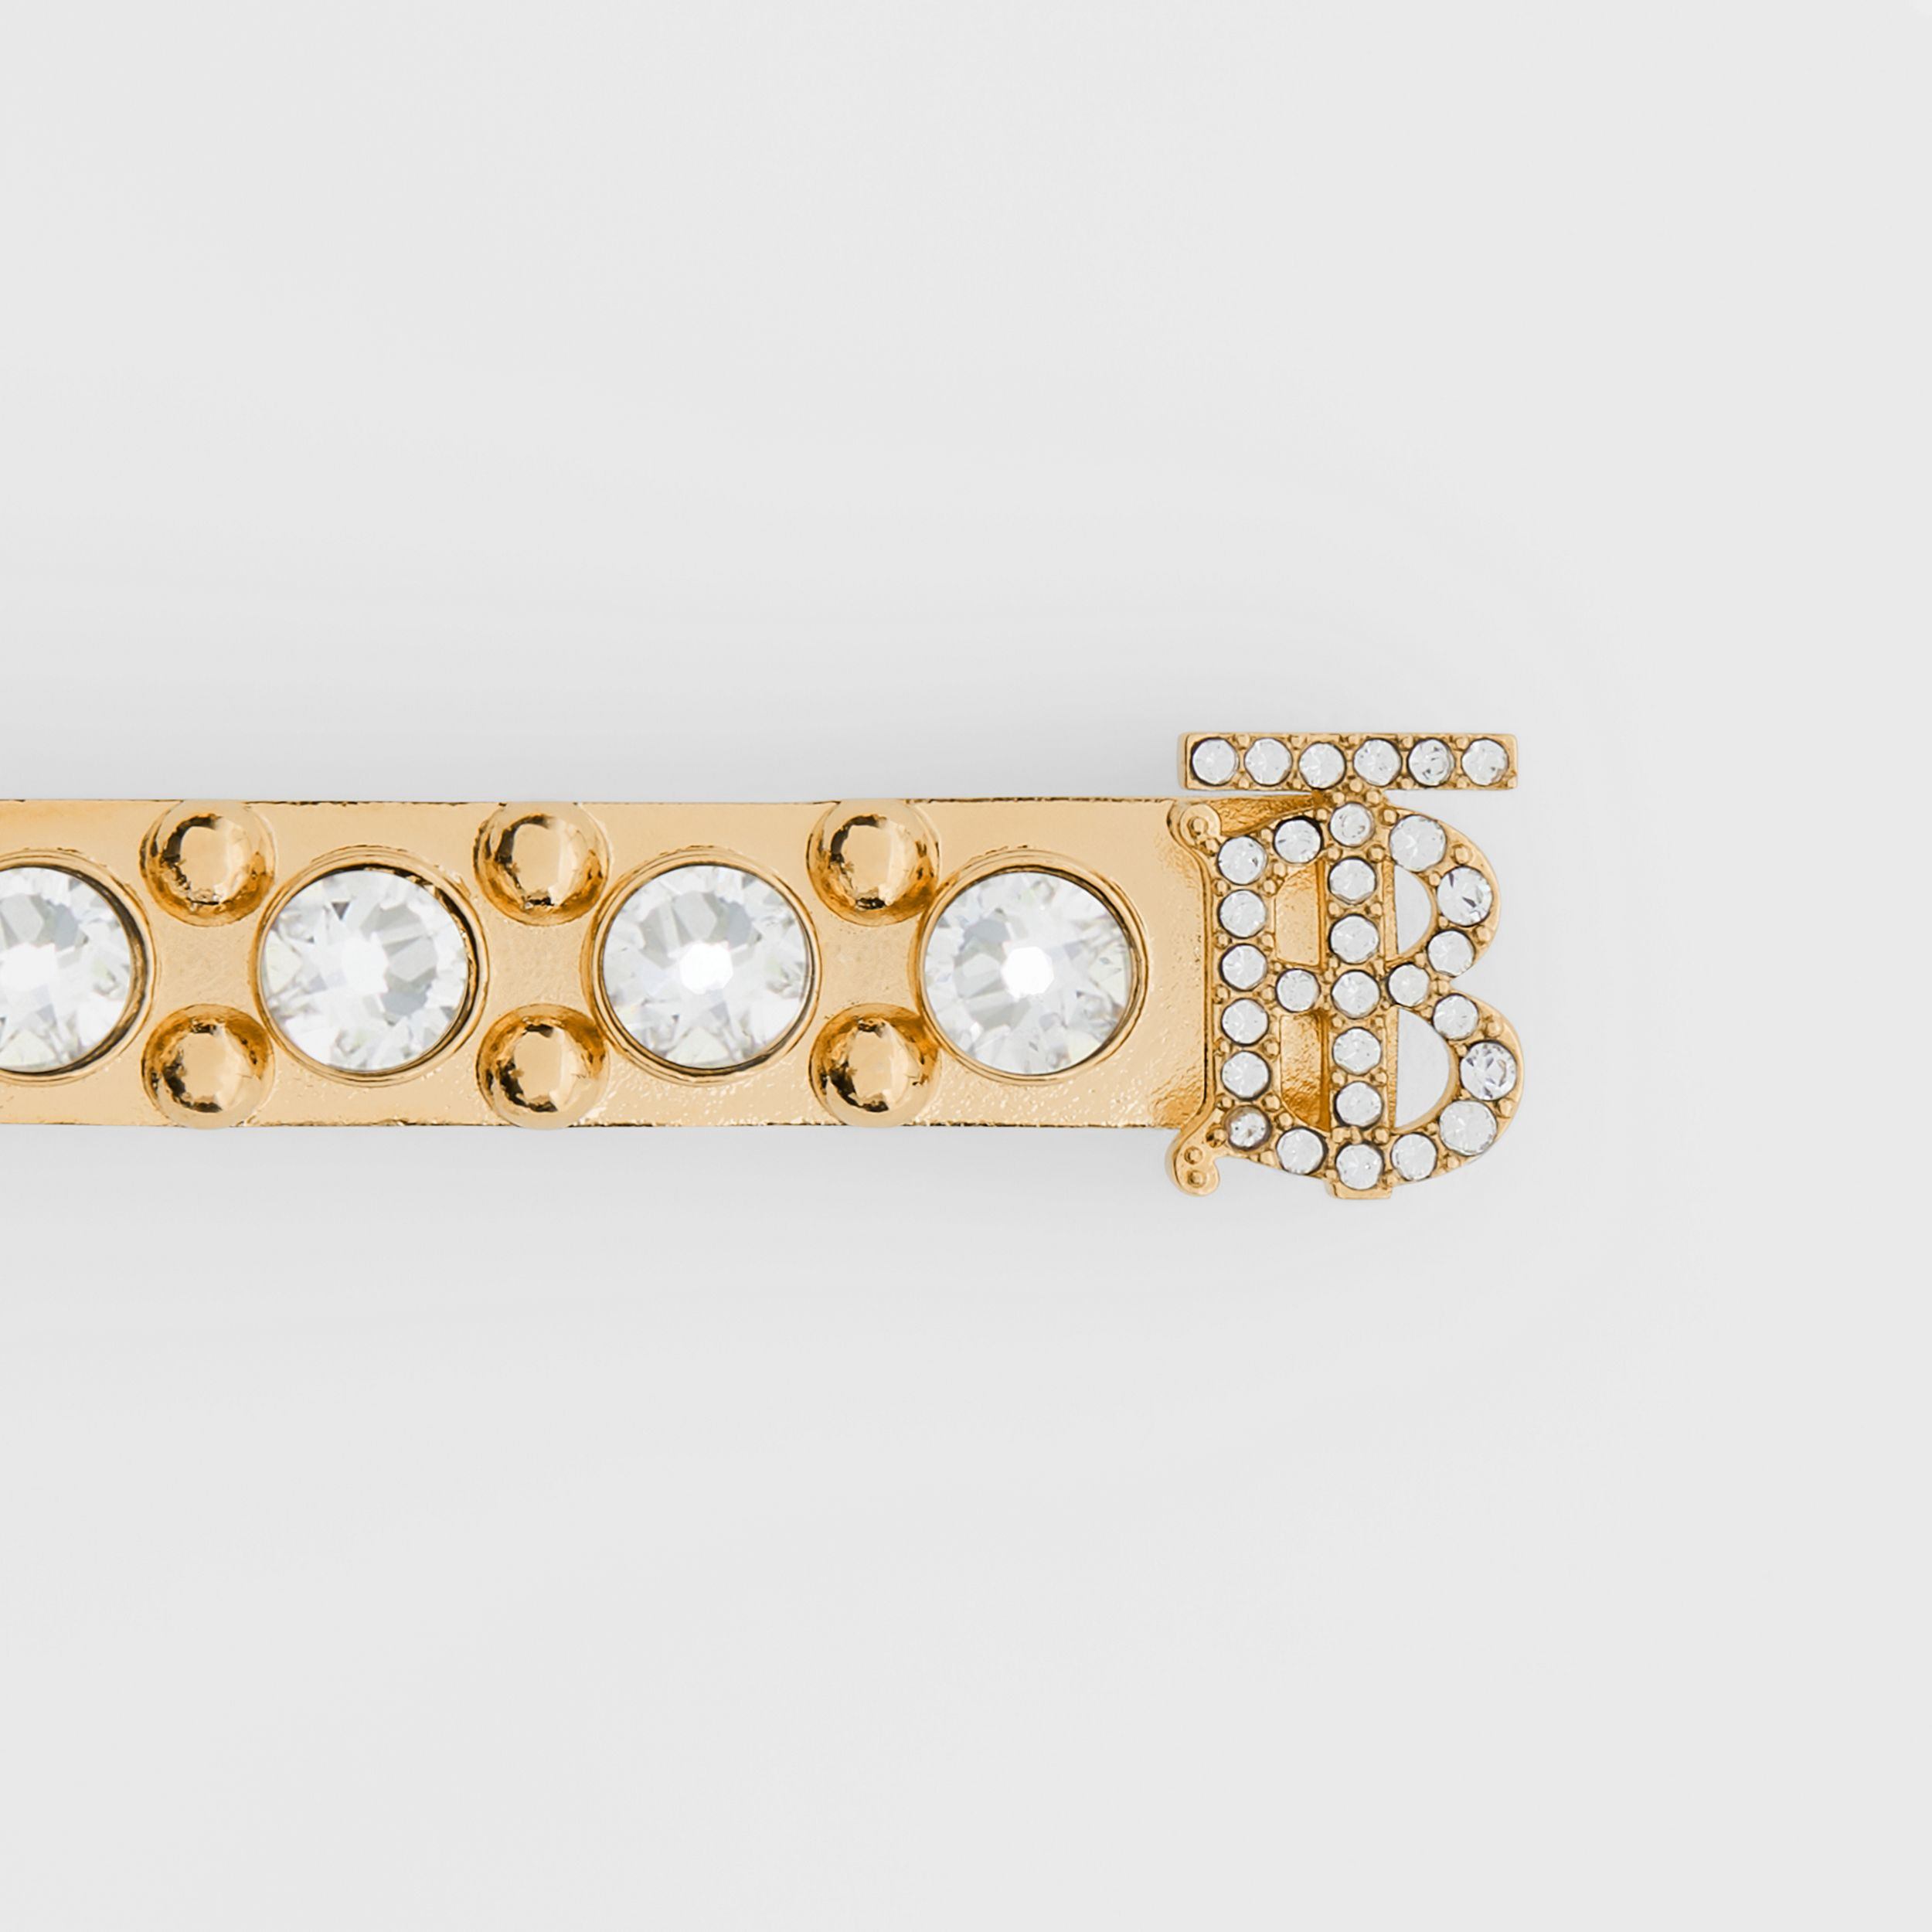 Crystal Monogram Motif Gold-plated Barrette in Light | Burberry - 3